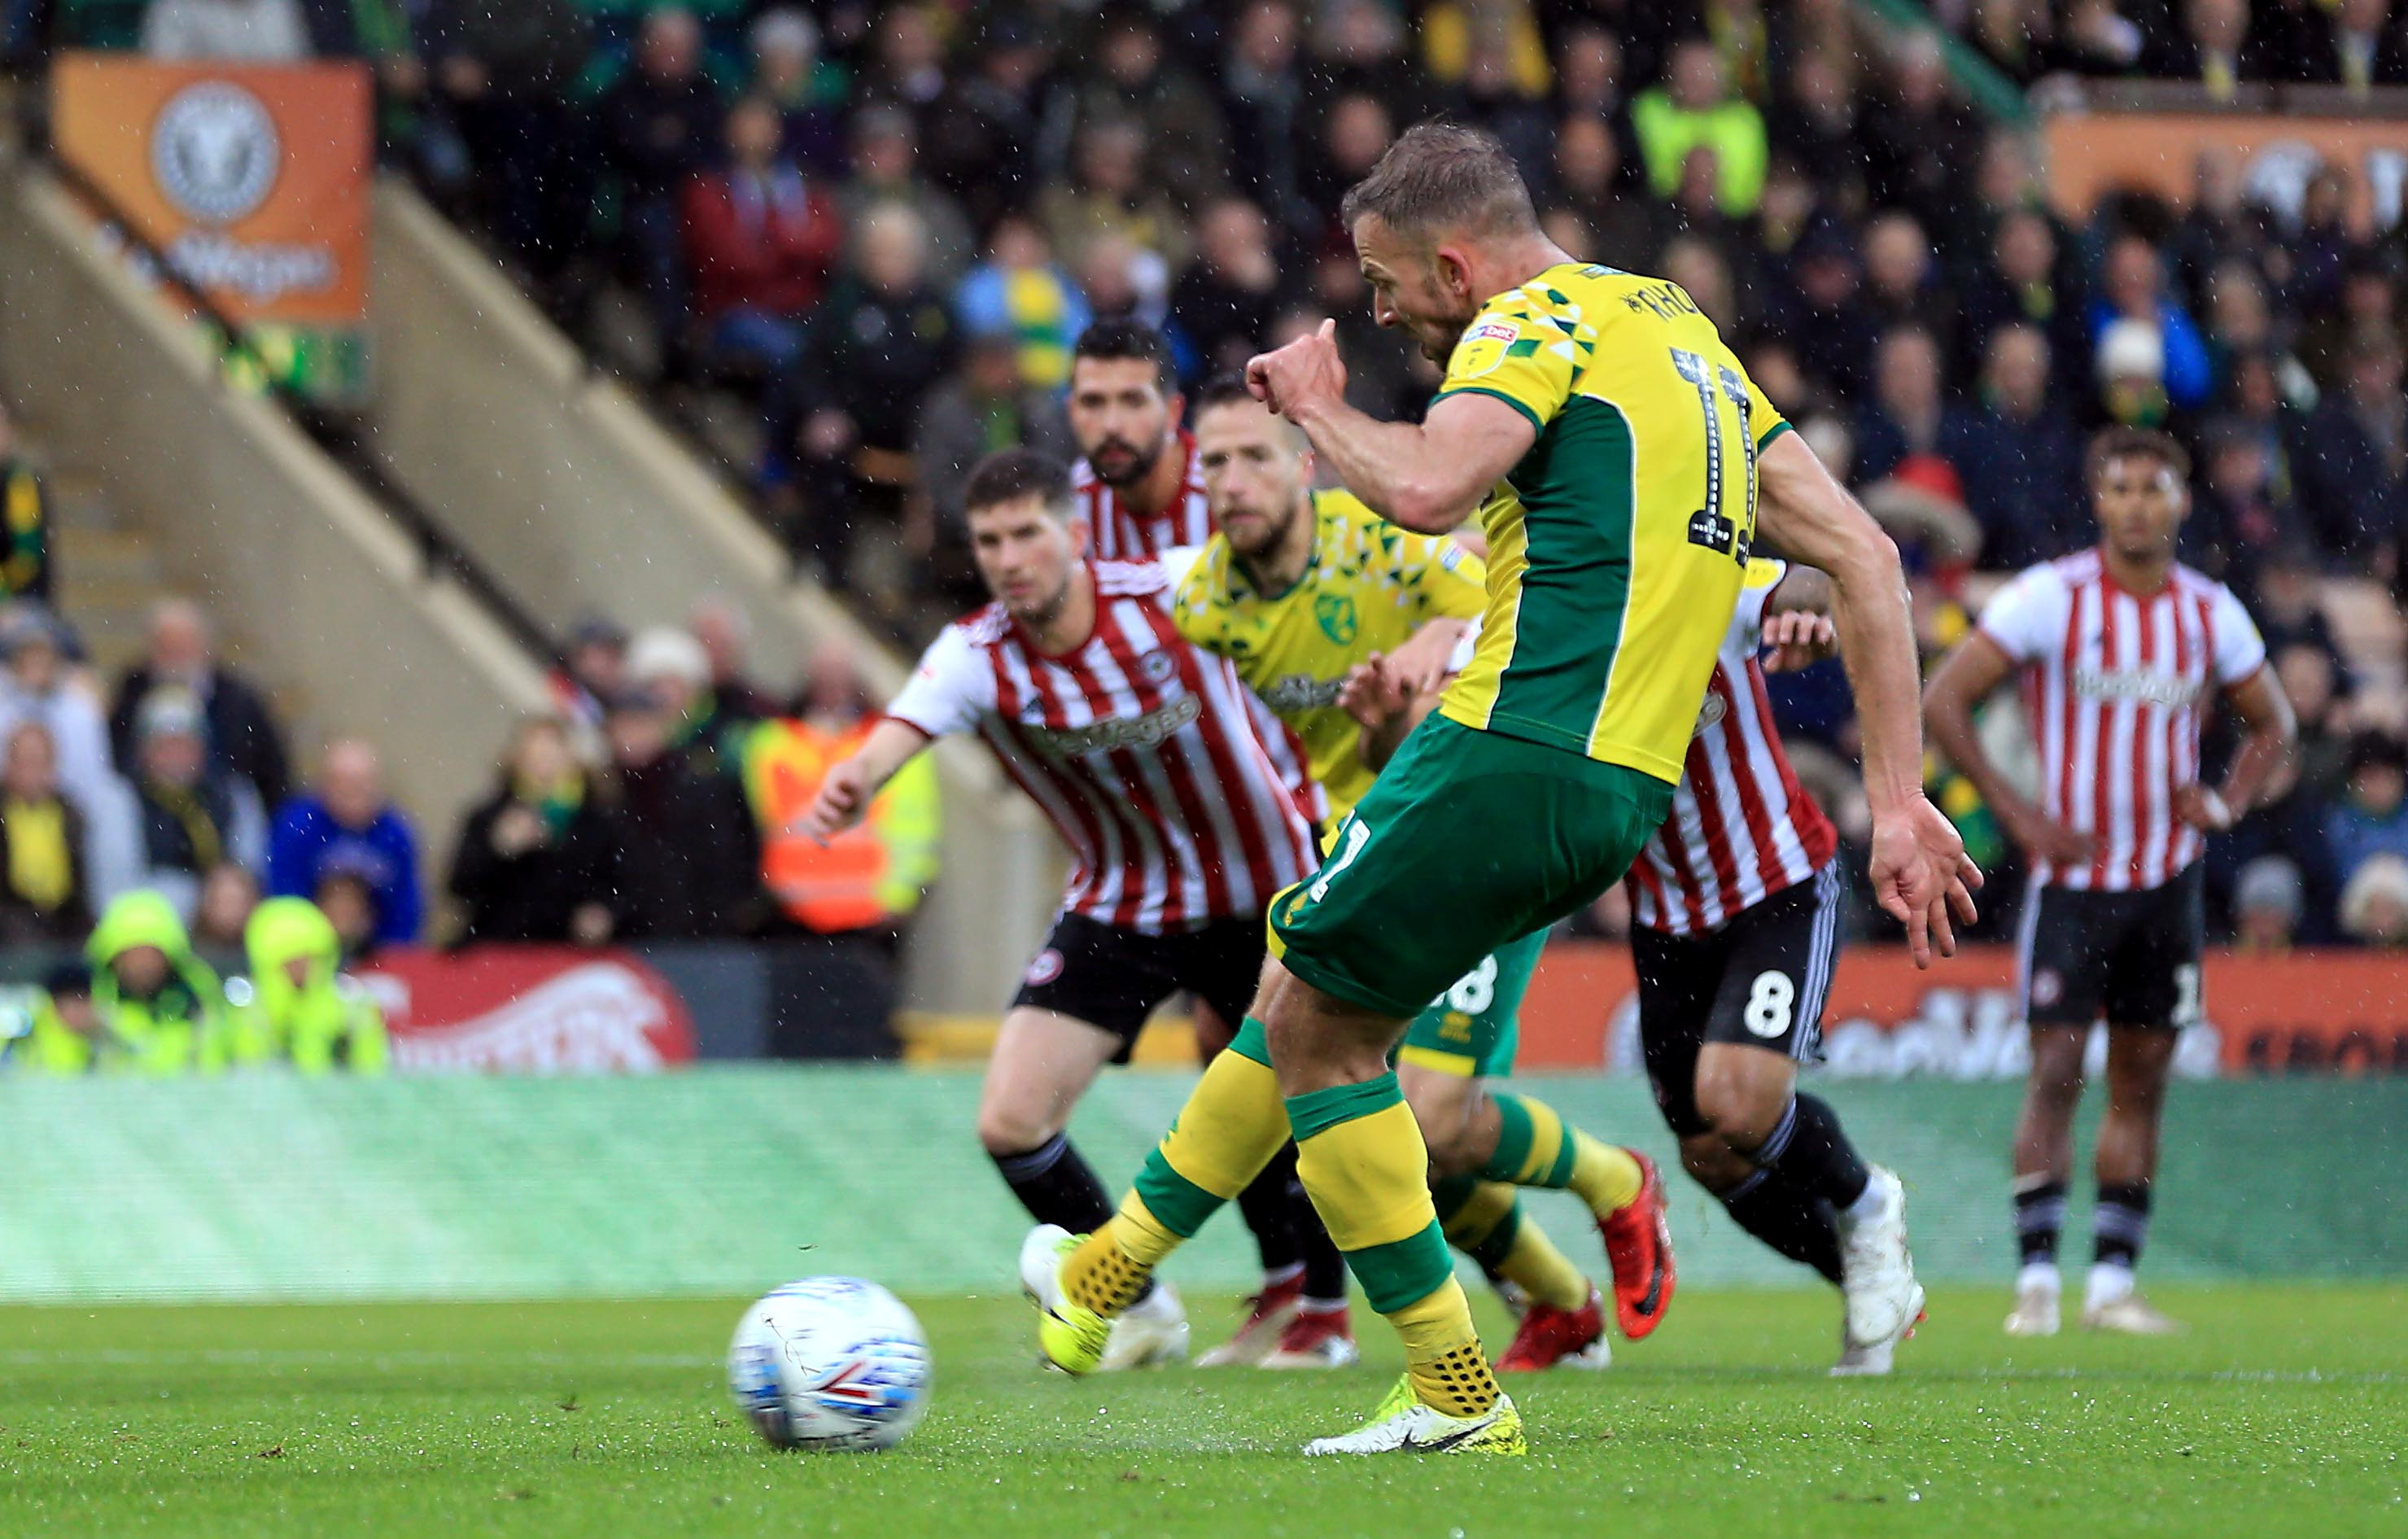 Bournemouth vs norwich betting previews three person golf betting games on the course